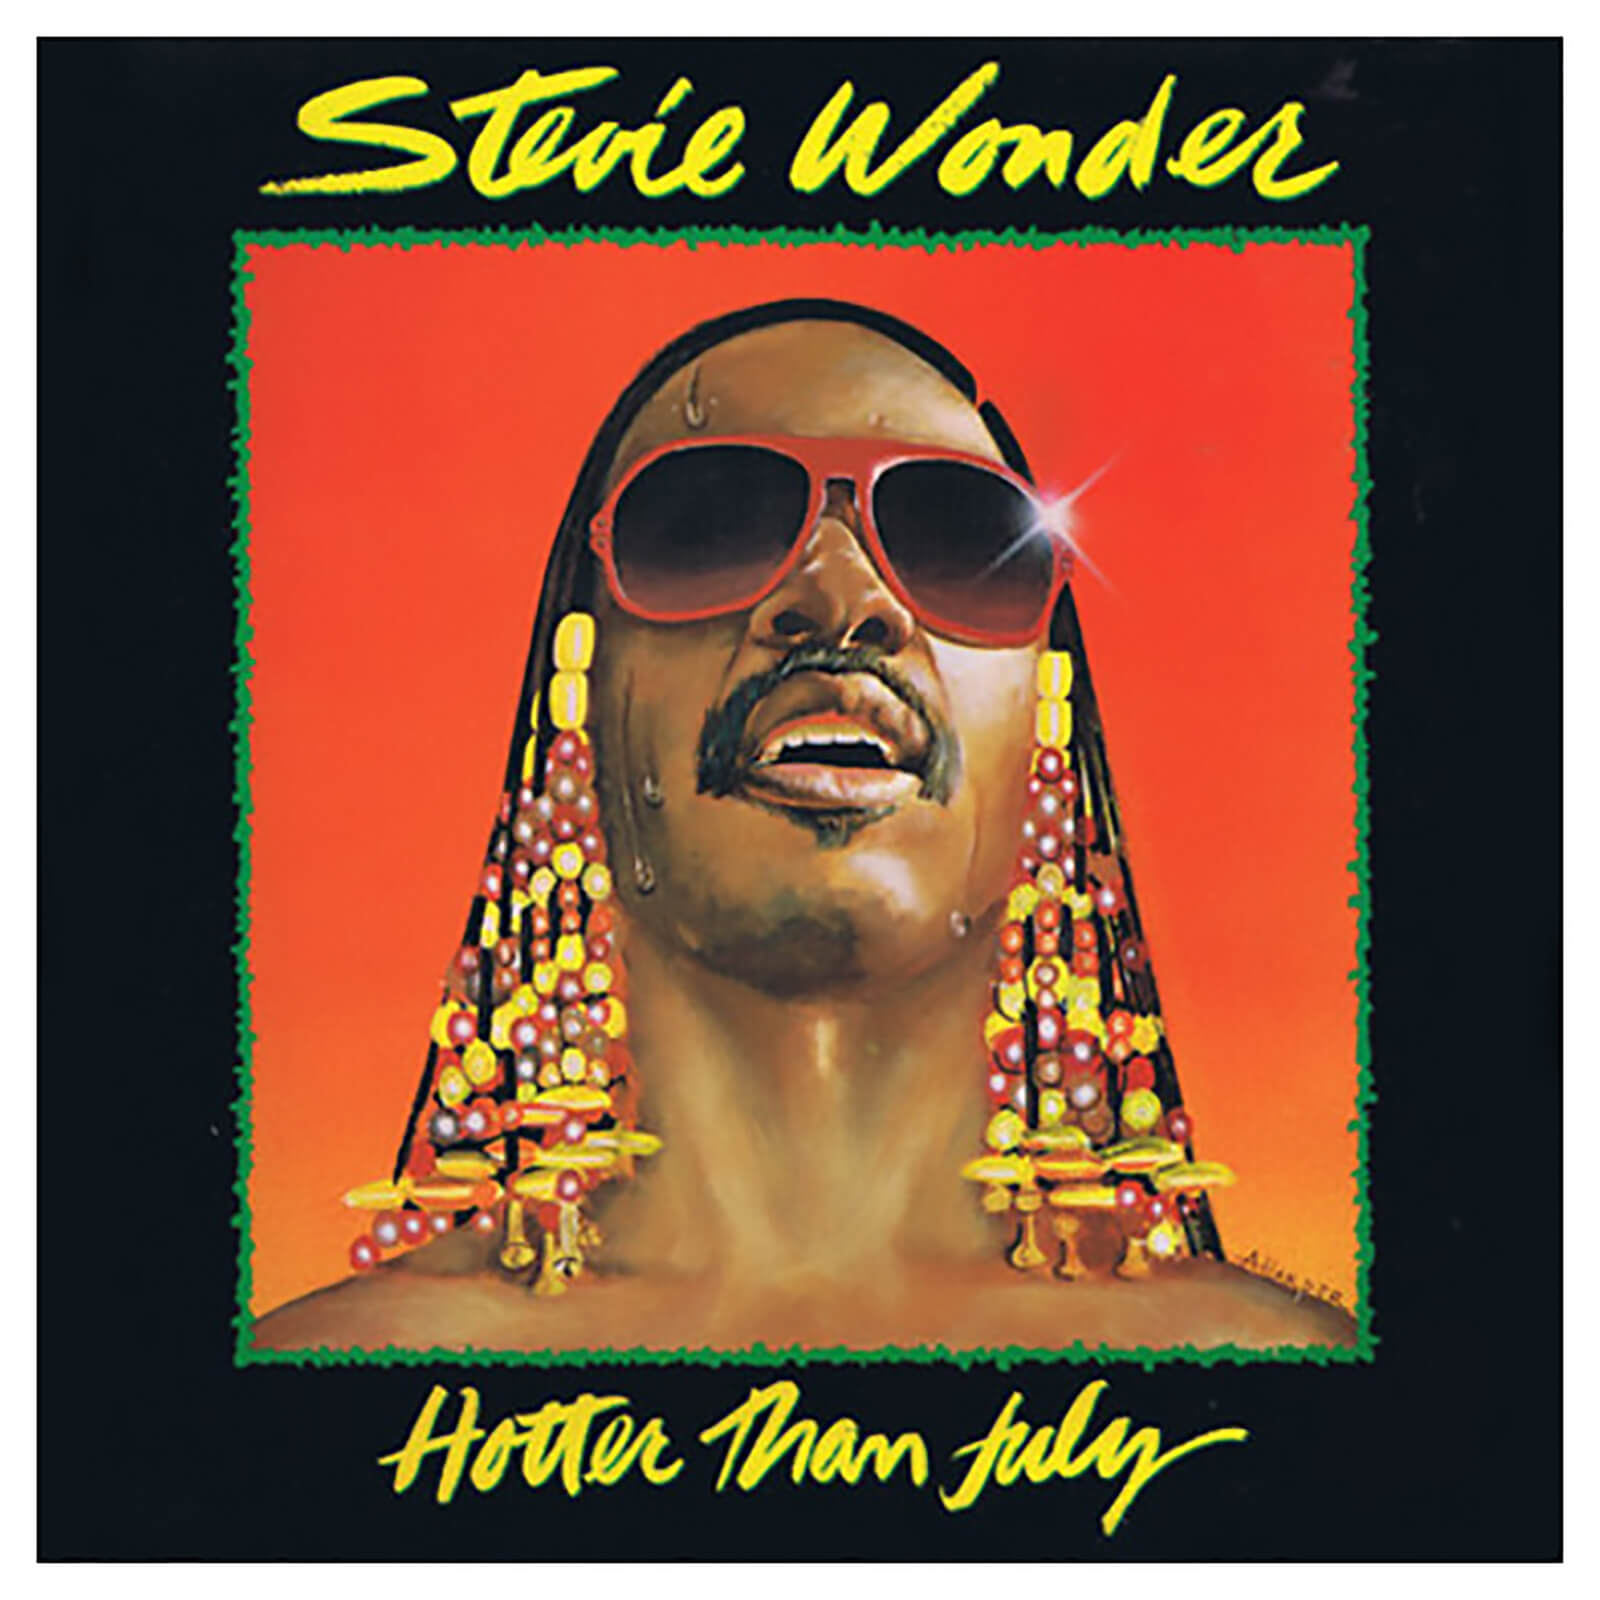 Stevie Wonder - Hotter Than July - Vinyl